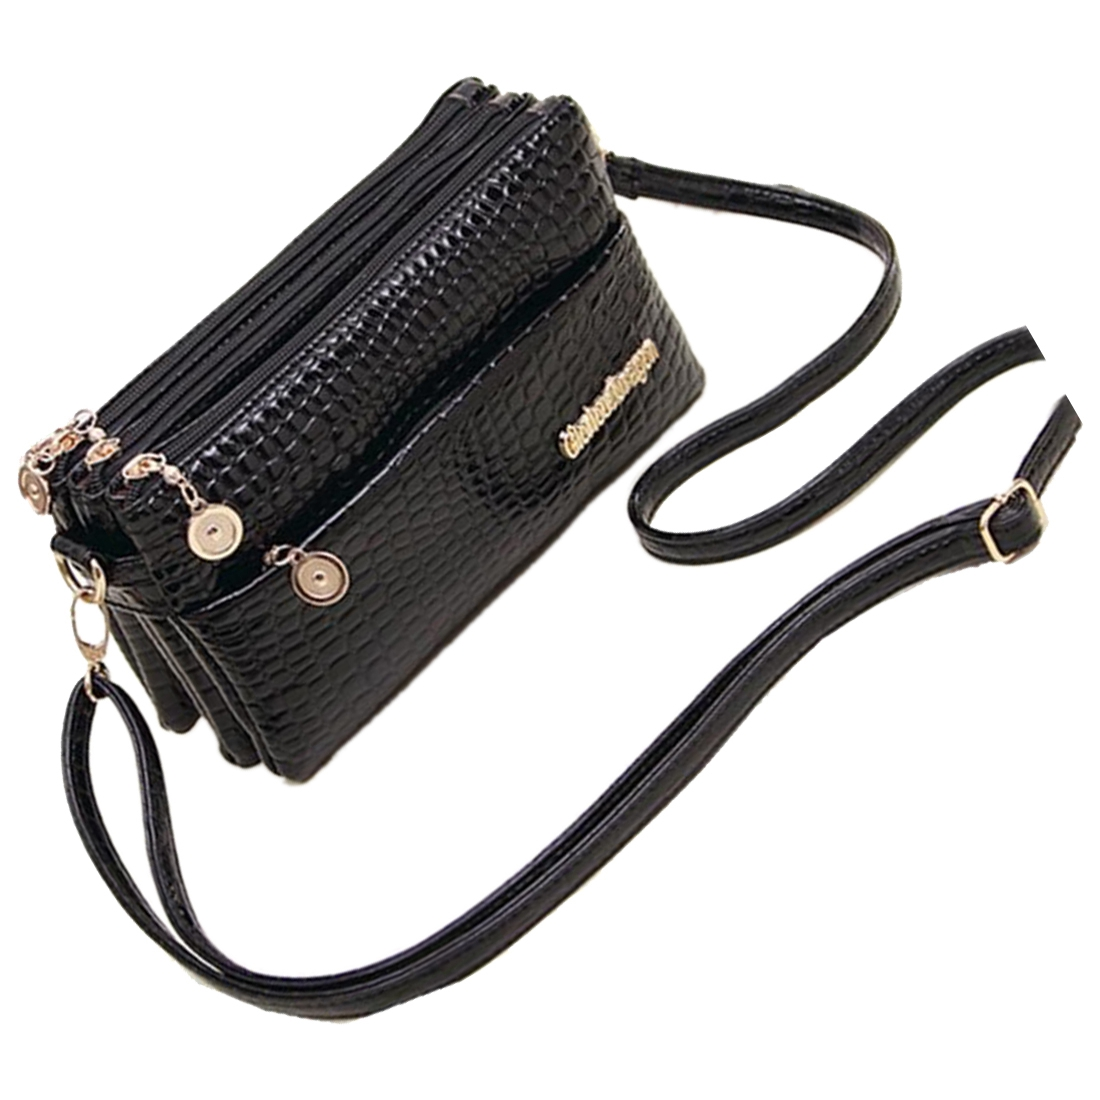 VSEN Hot Women handbags Small Shoulder Bag Crocodile Pattern Women Messenger Bags for Women Handbag Clutch Black BLUE RED WHITE